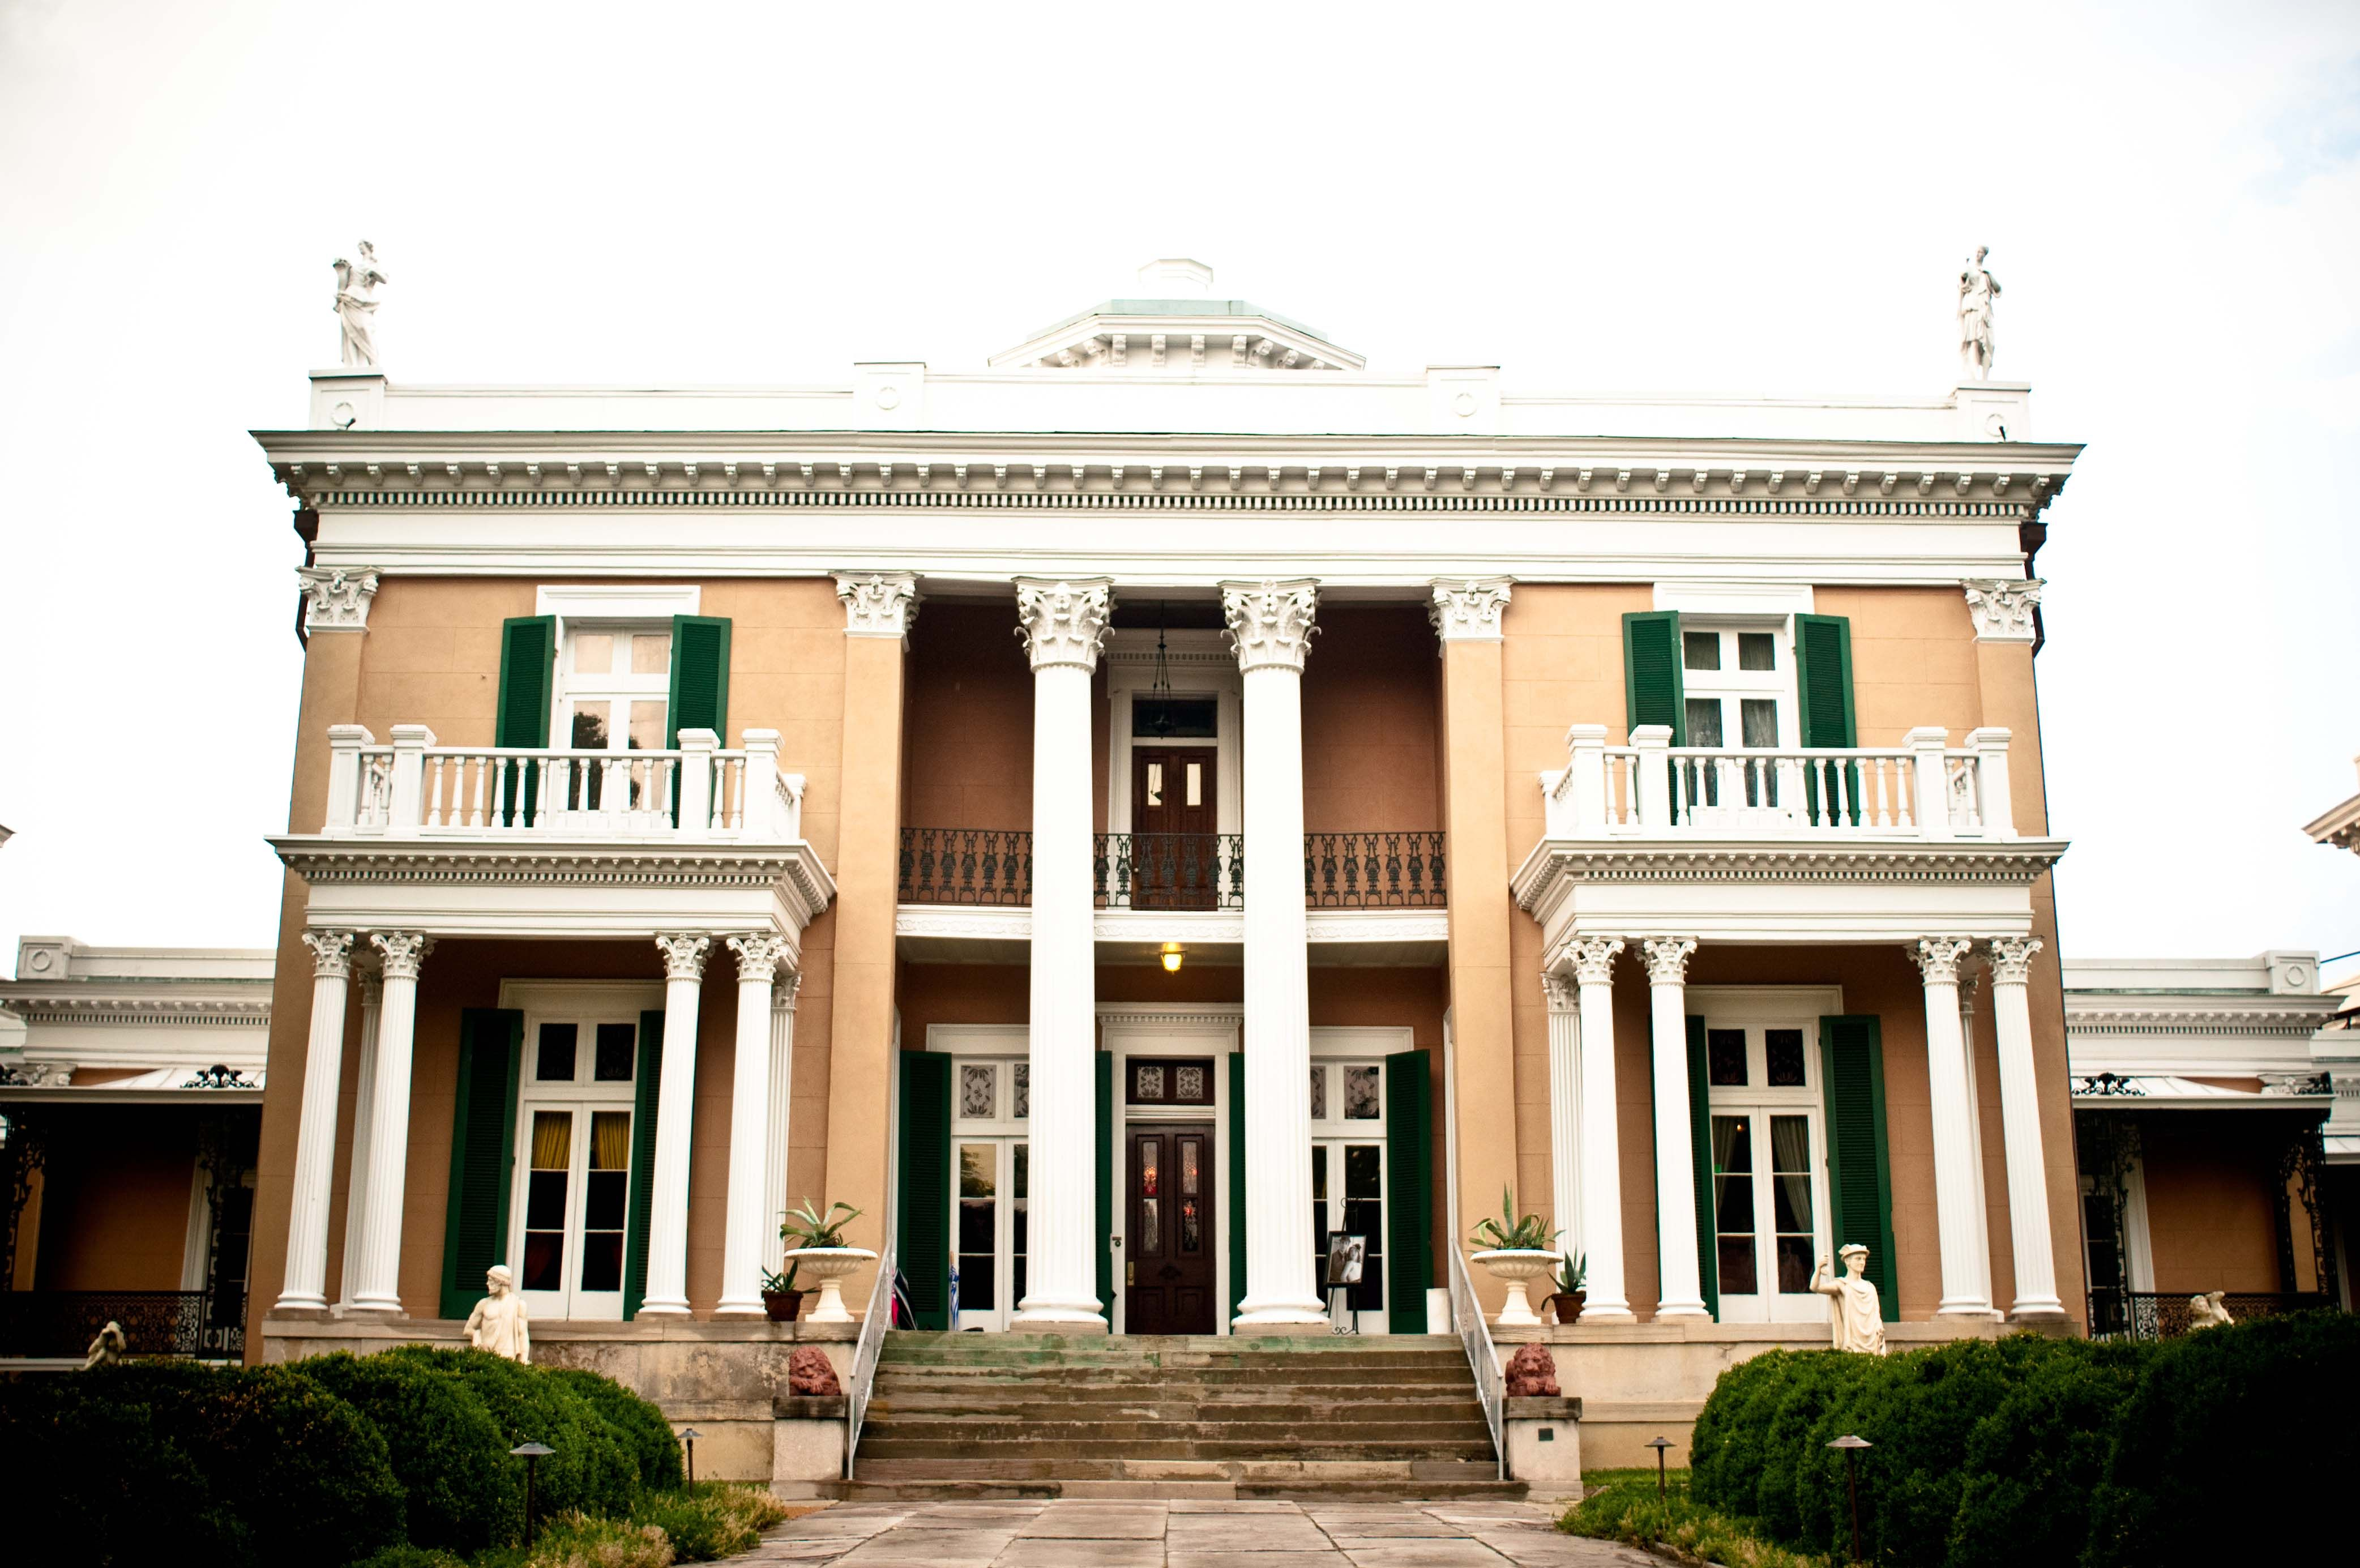 The Belmont Mansion on Tennessee? Where we met. (With